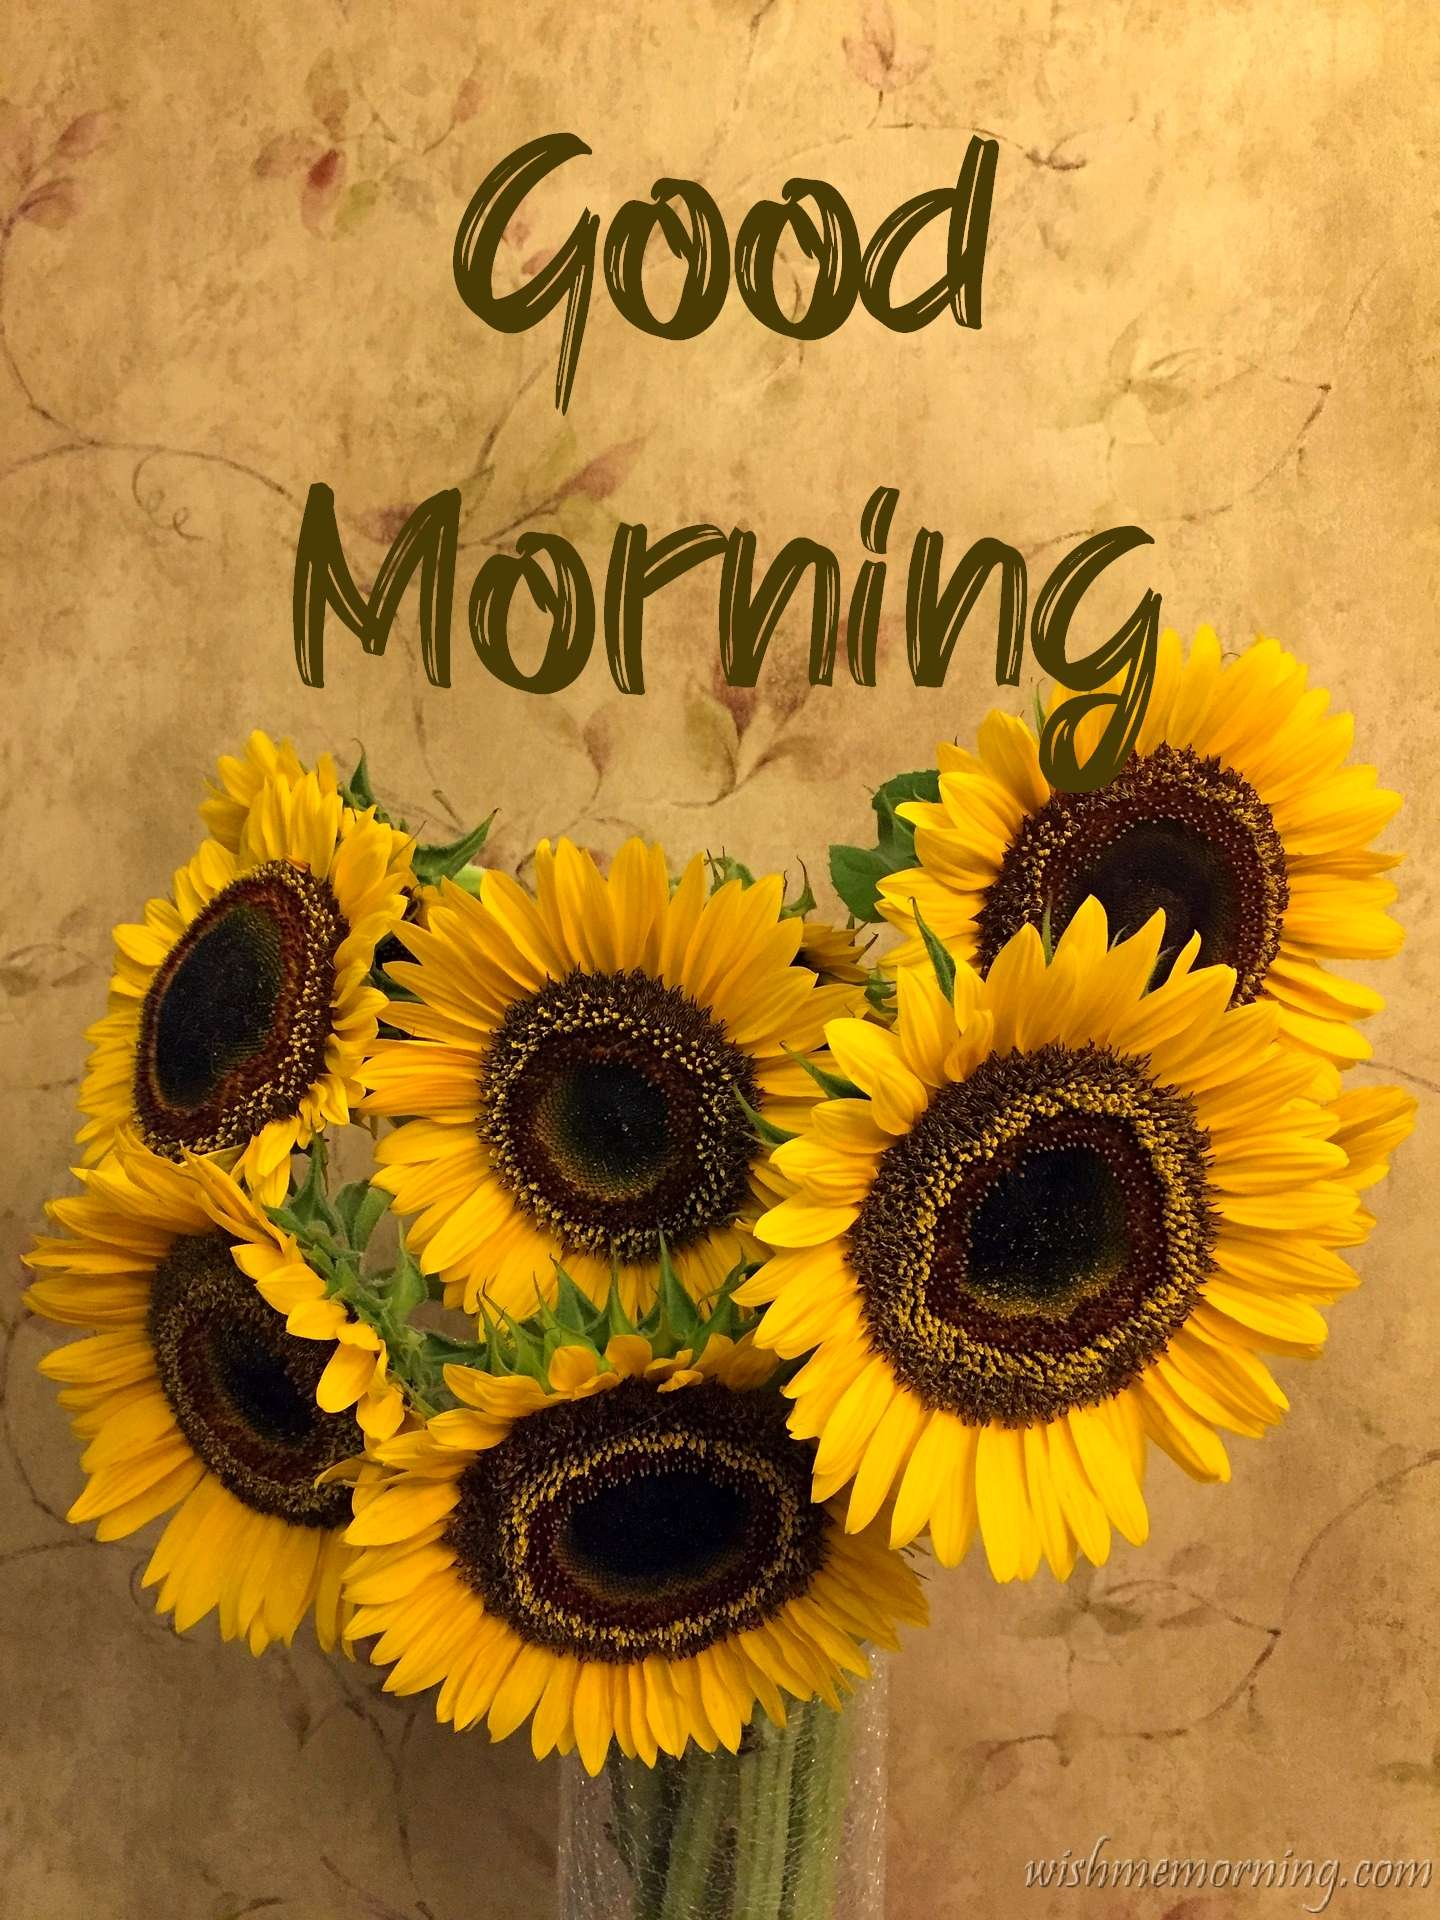 Six Yellow Sunflowers Wrapped Good Morning Image